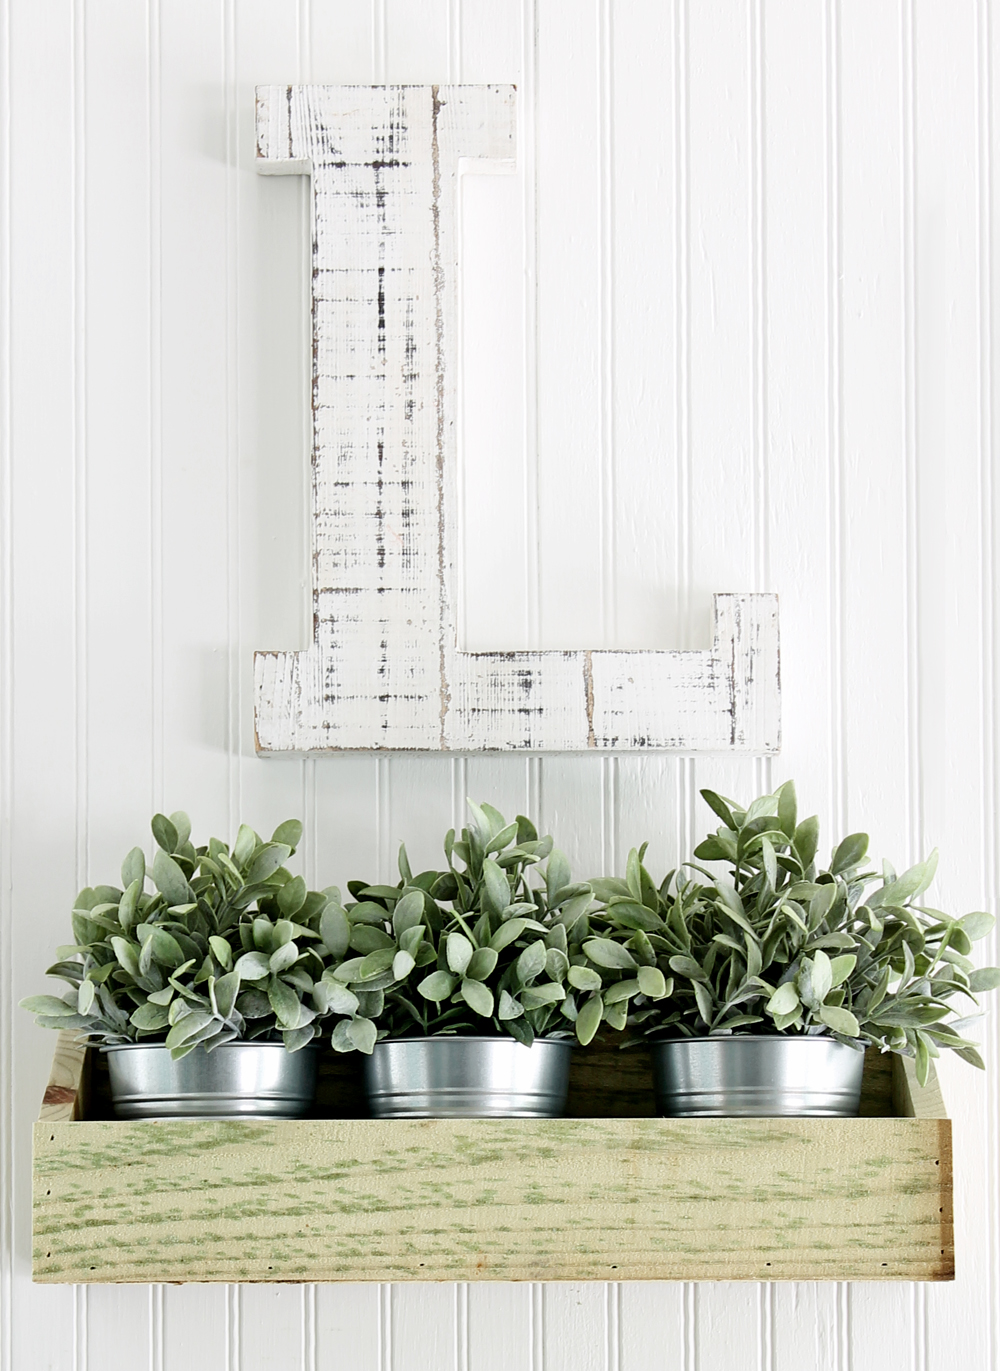 How to Make Wooden Farmhouse Wall Decor Bins for $2 in 15 Minutes